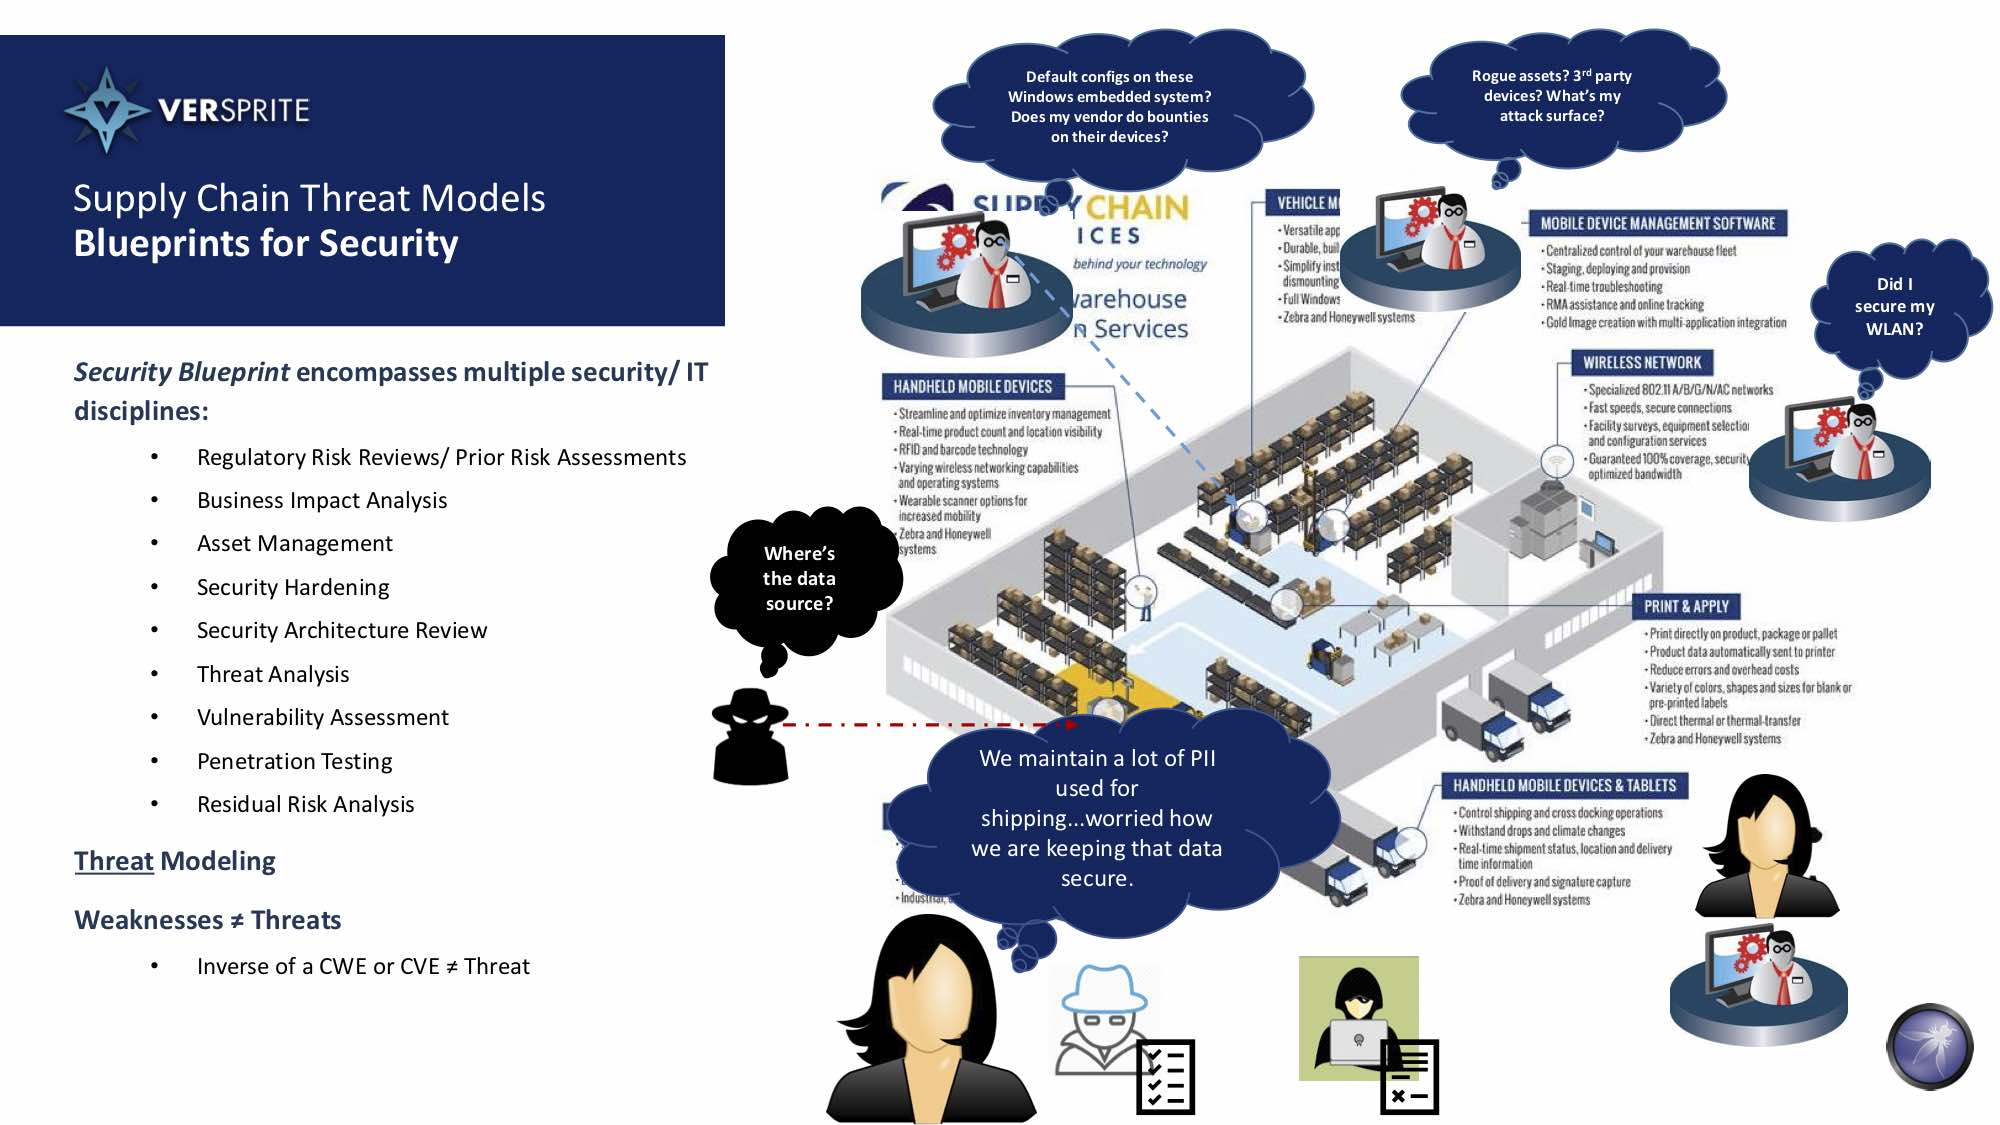 Supply Chain Threat Model - Overview